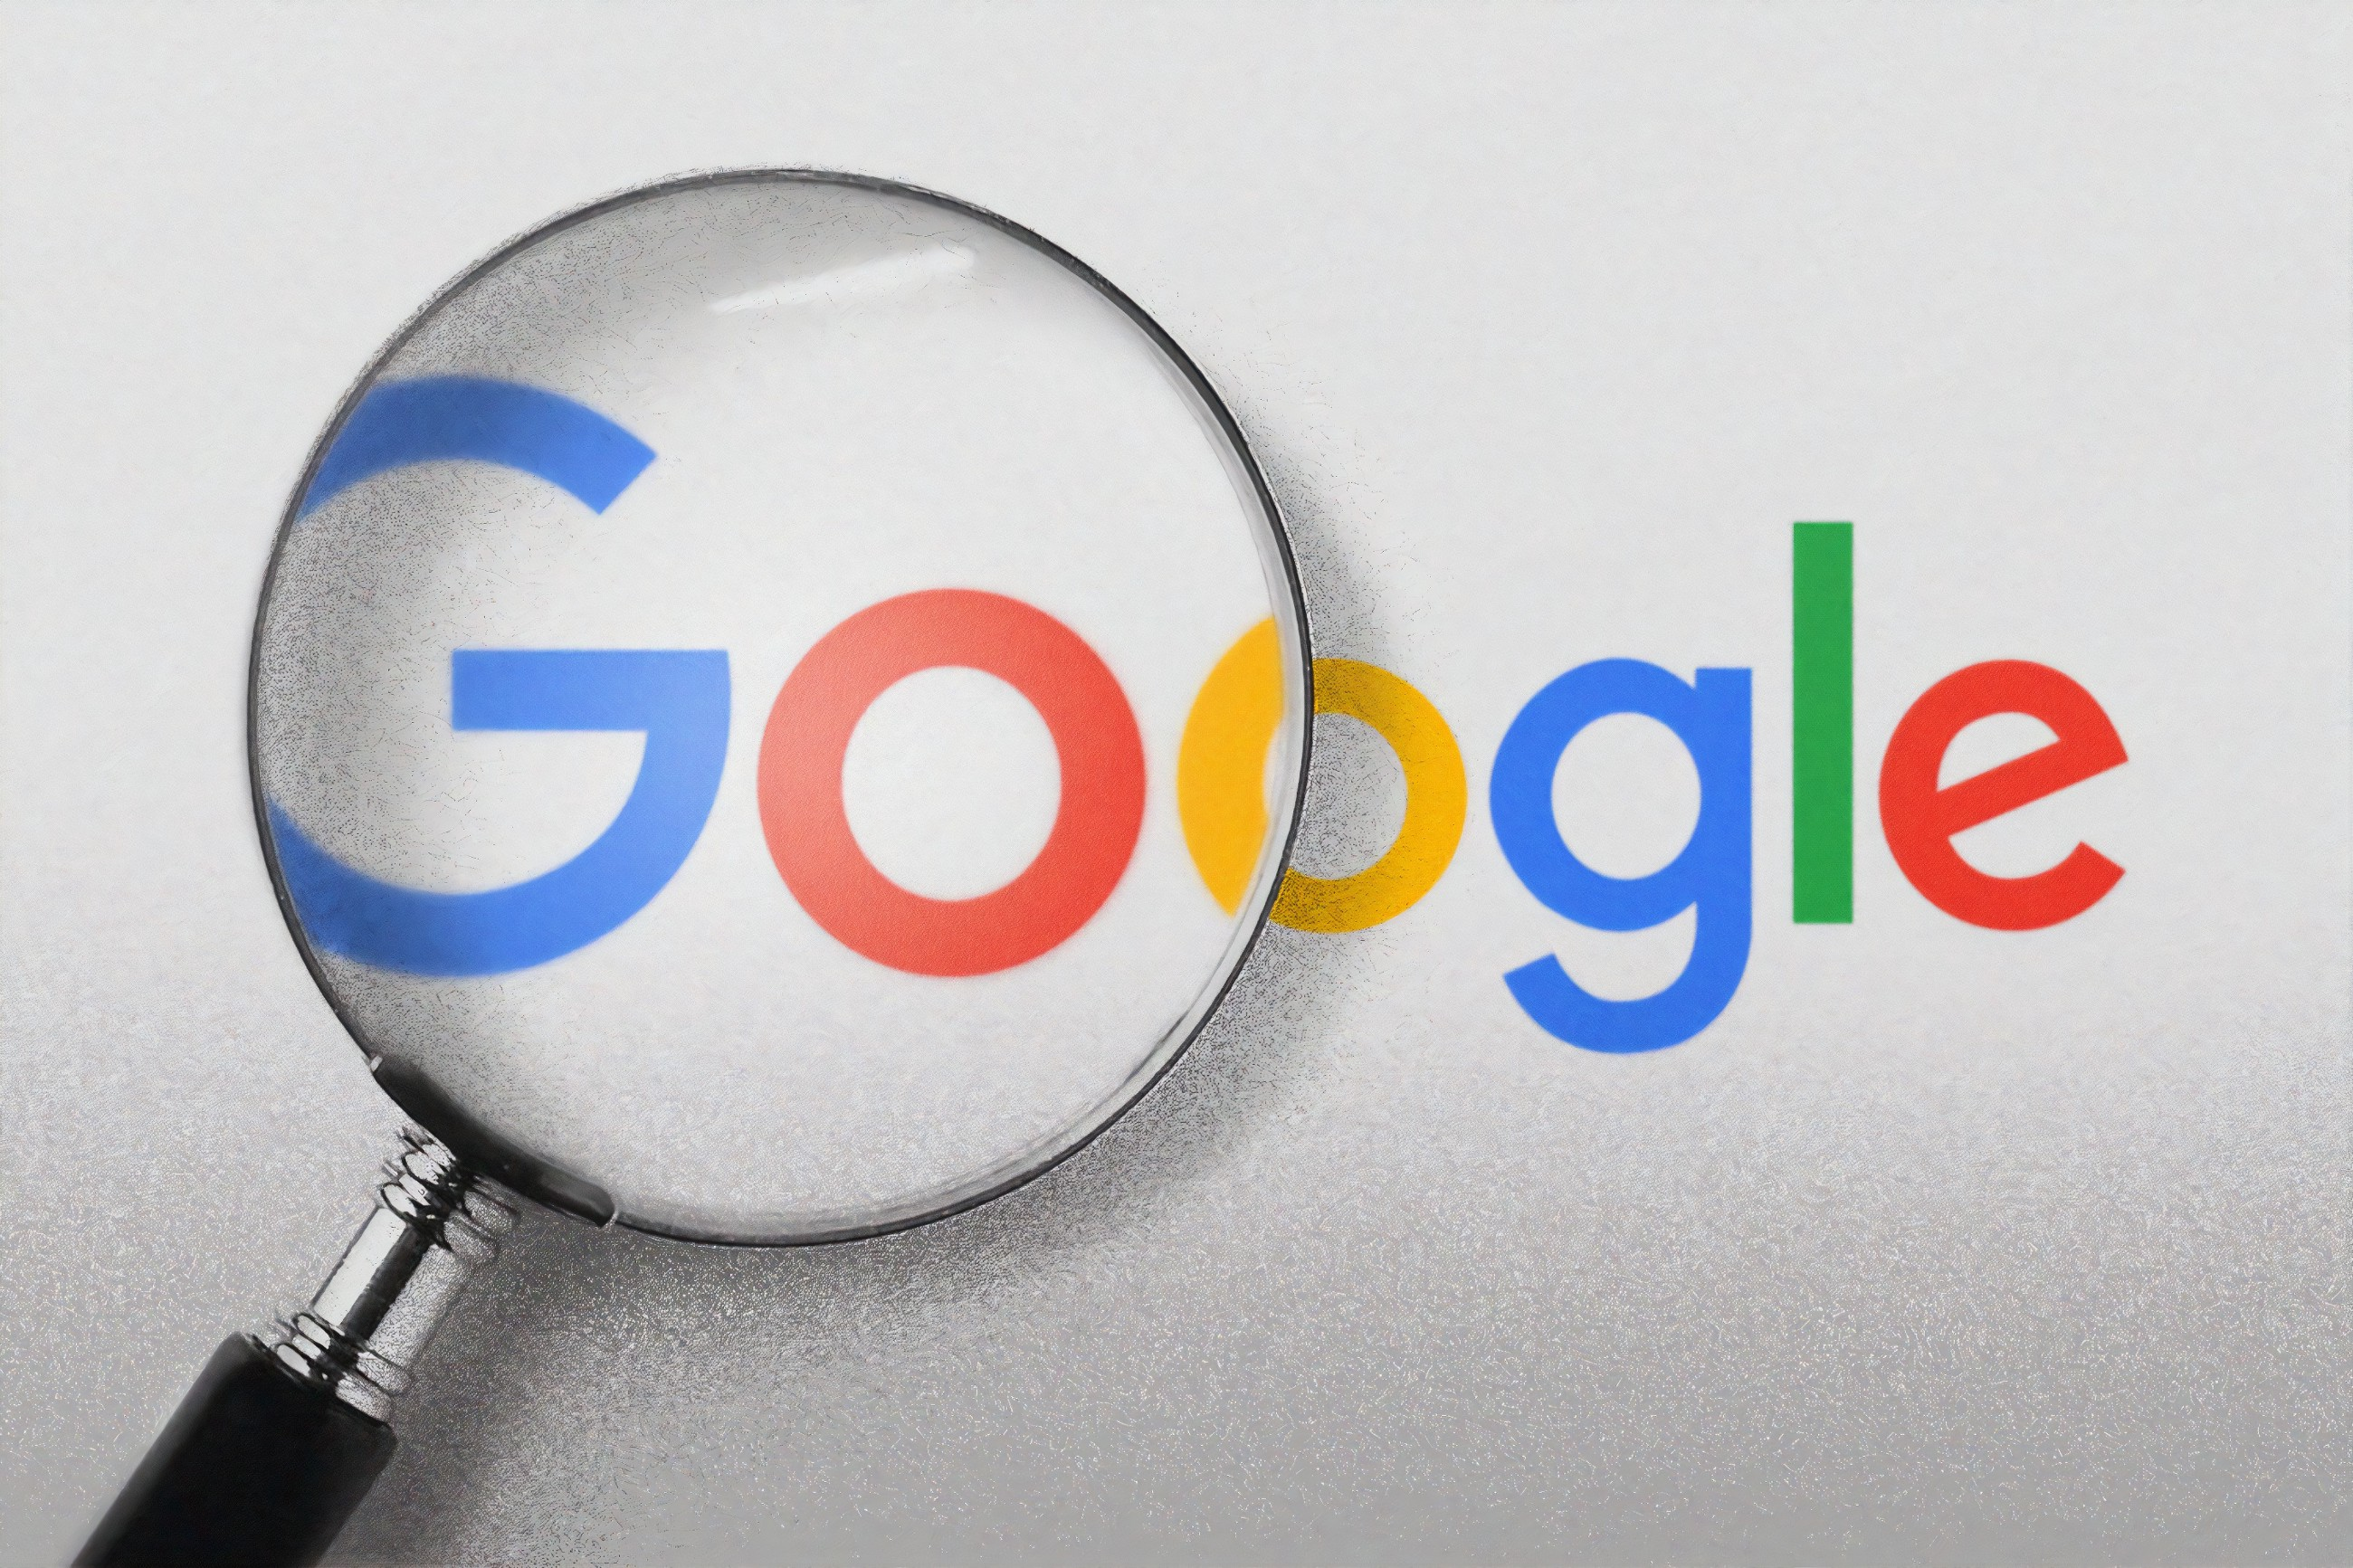 You can have access to 5700 publications from Google Research right now.